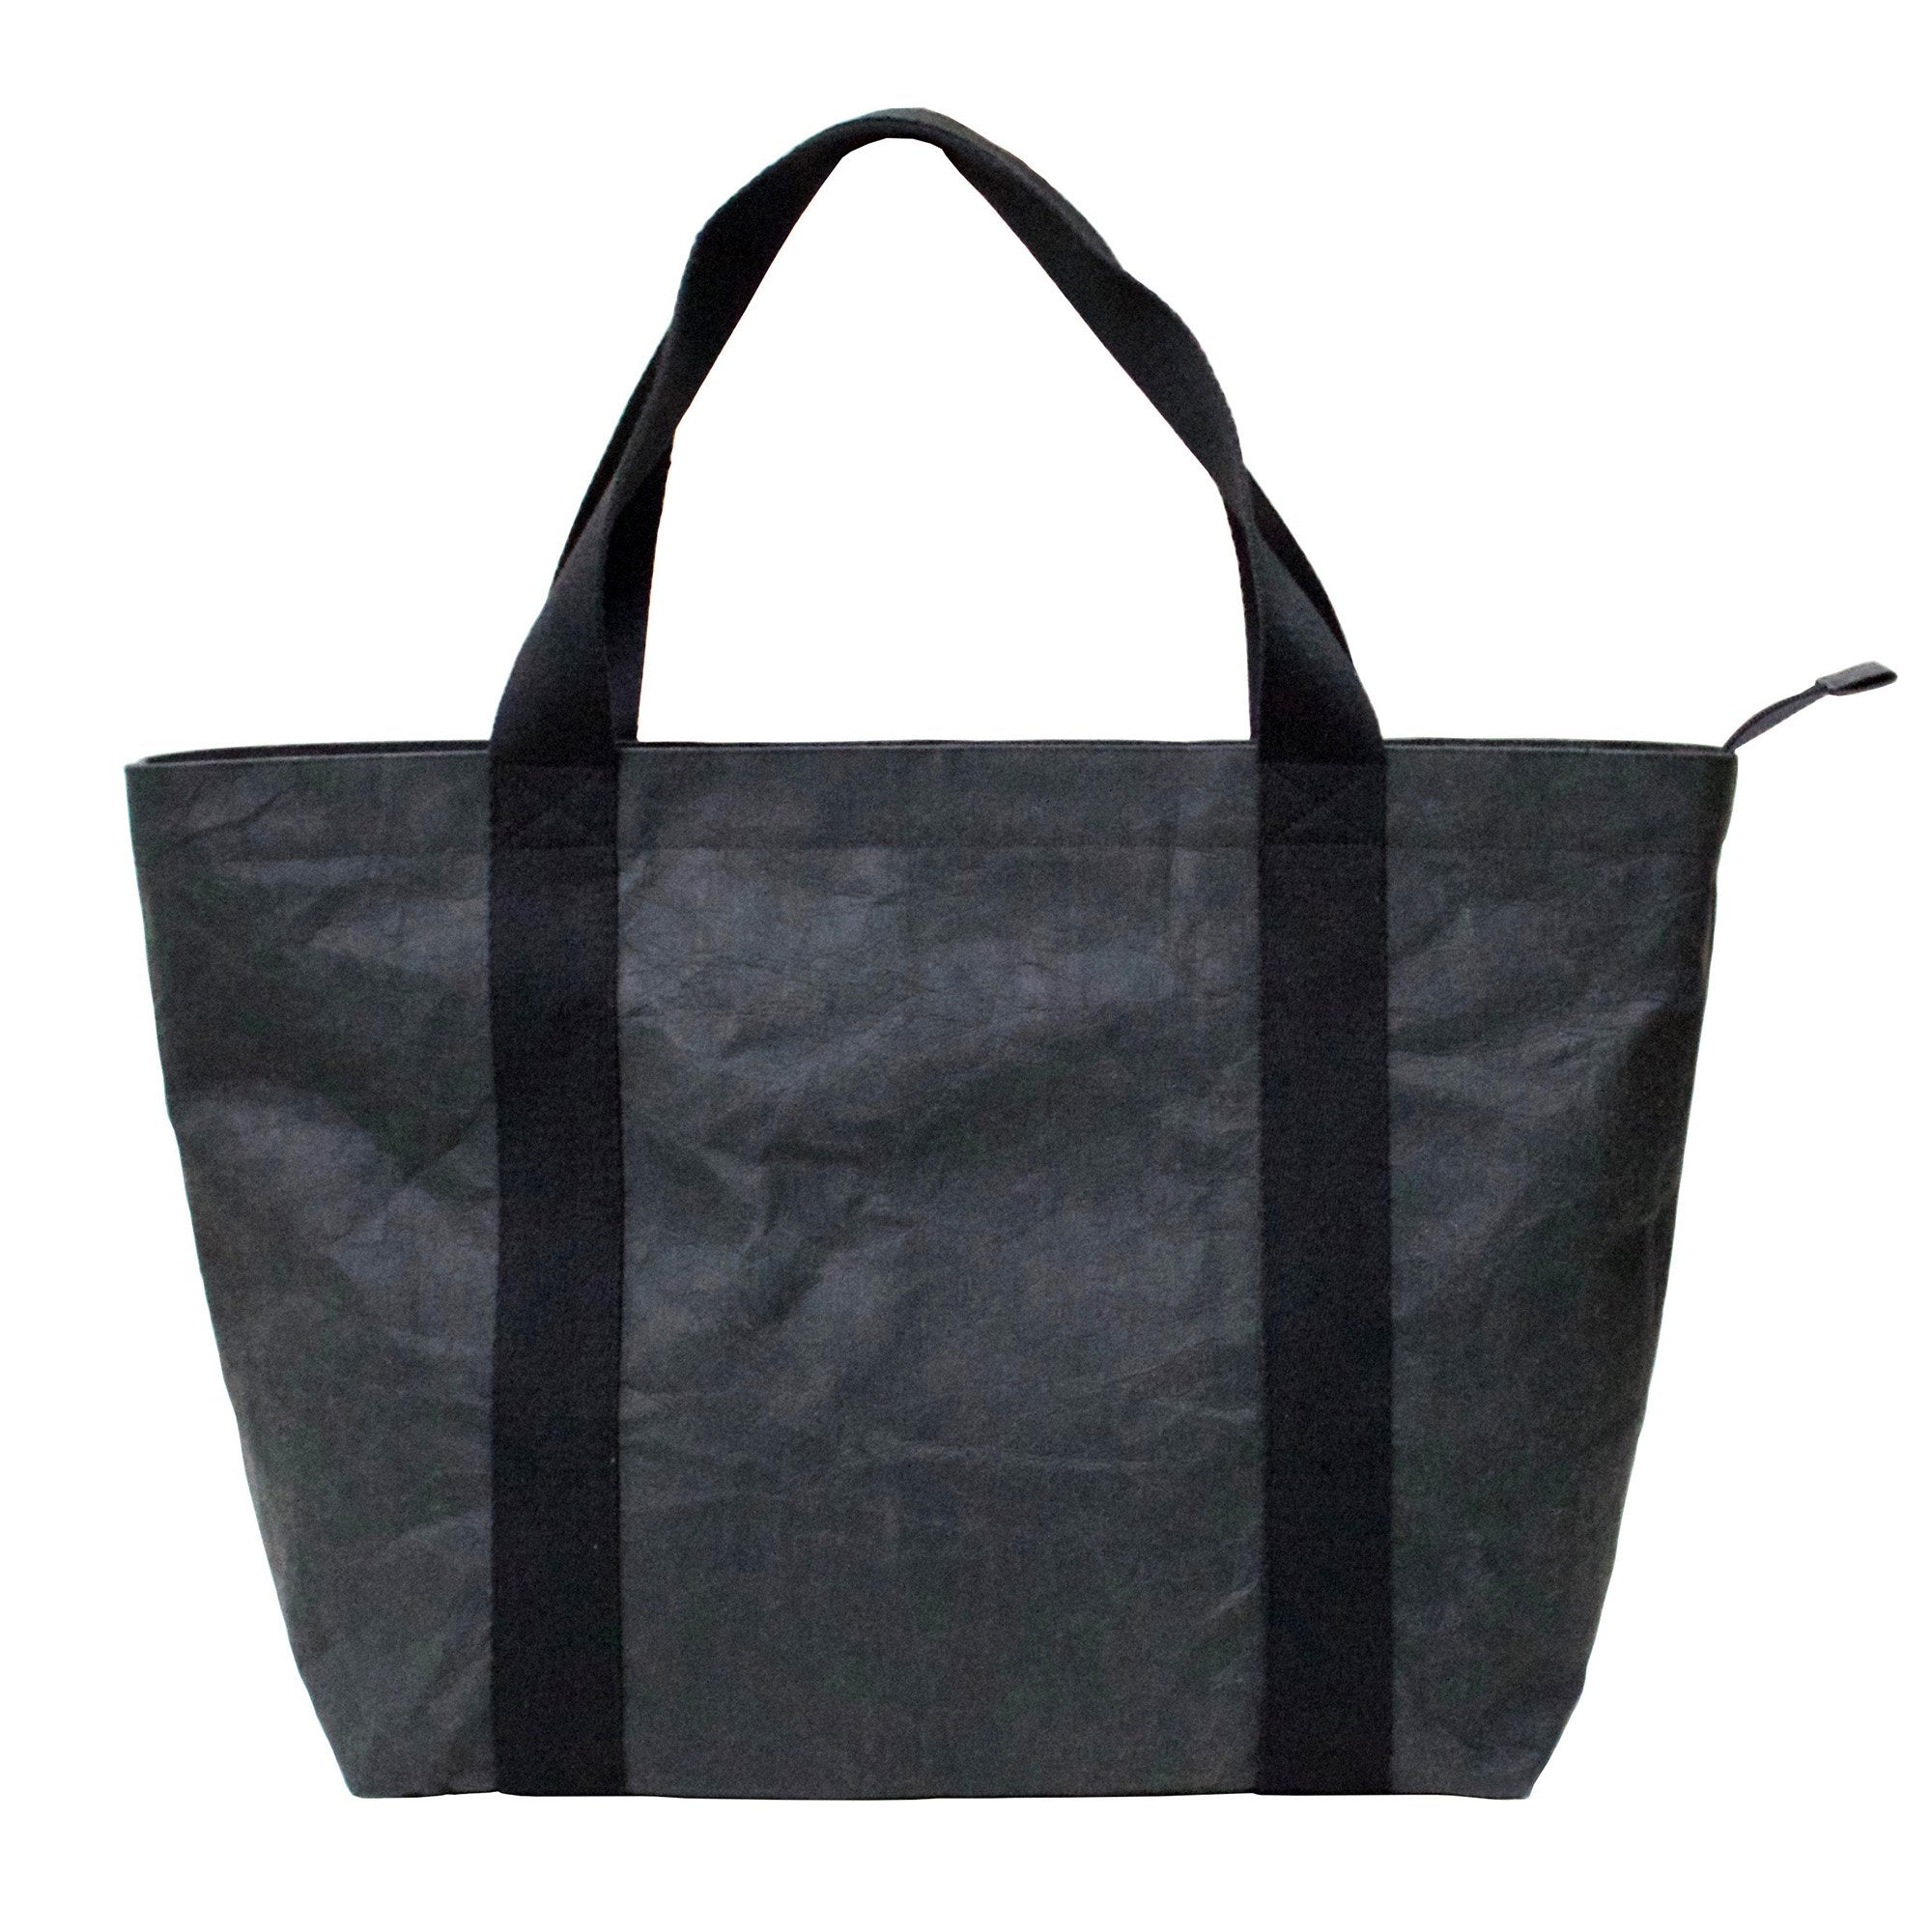 Athena Black Tote Bag made from eco-friendly Washable Paper-Kaban-Temples and Markets